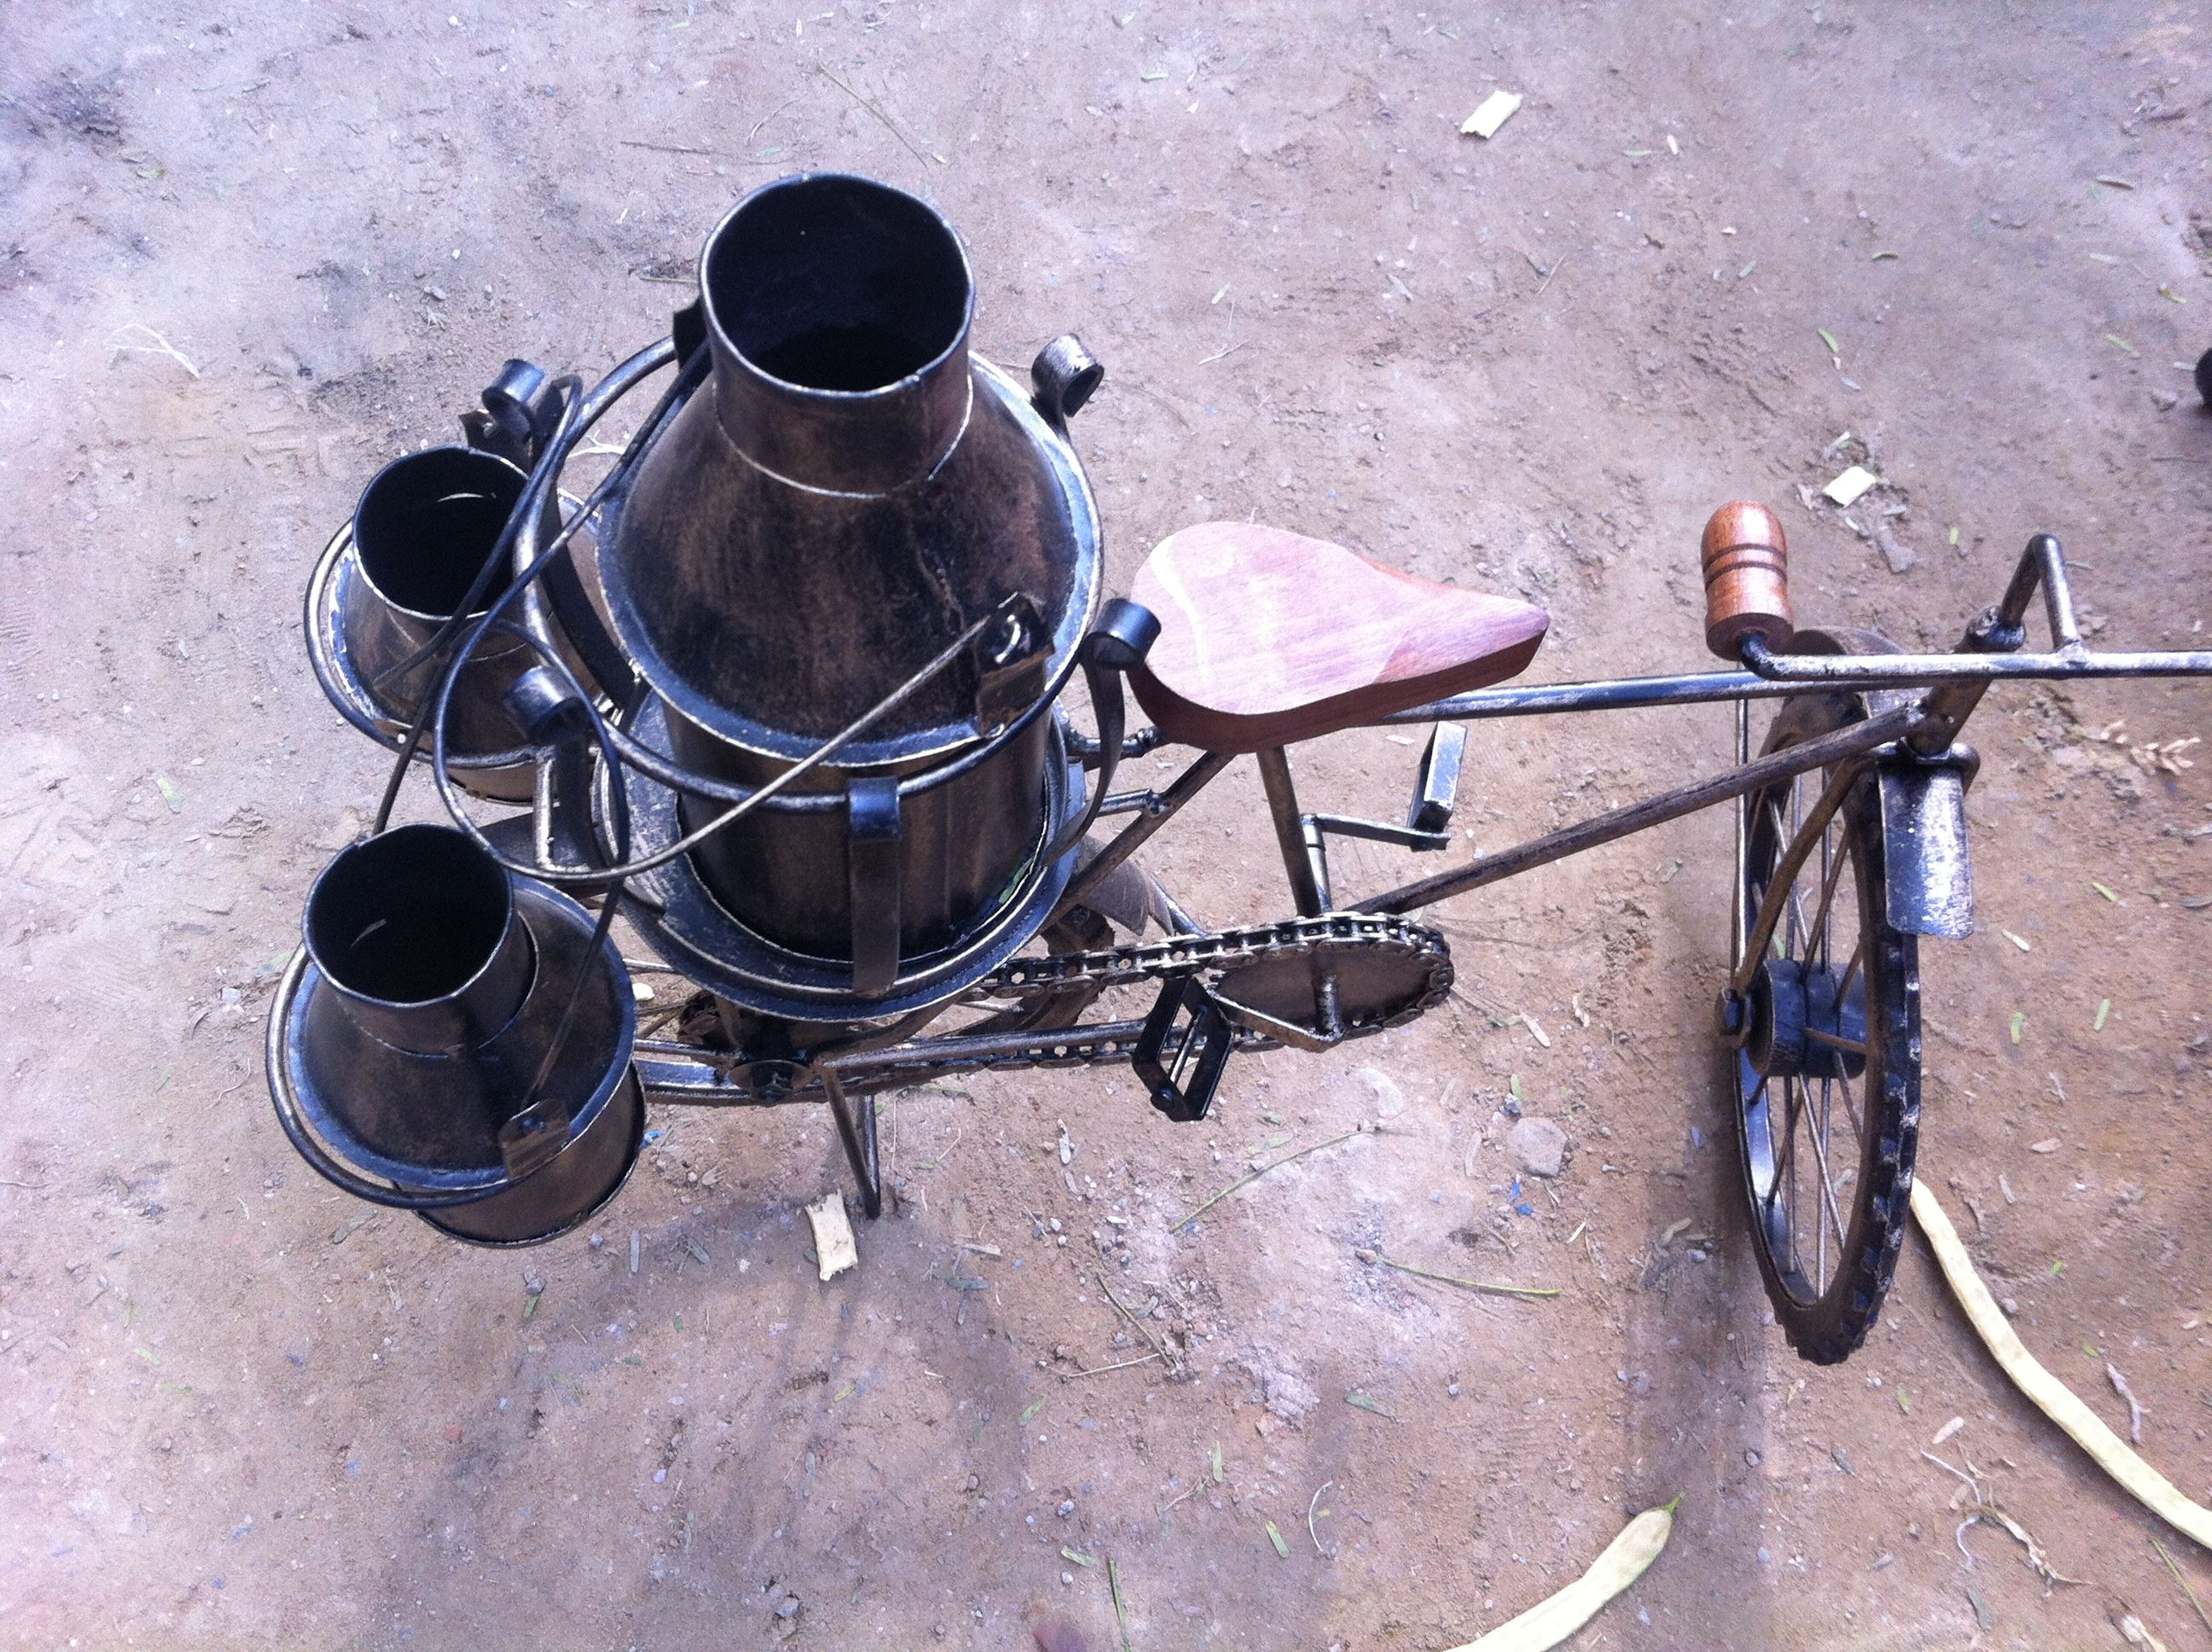 The Indian Milkman - Still seen in the Indian towns and villages, the milk man delivers fresh milk from door to door on his bicycle and cans of milk. Hand crafted from wrought iron and wood.   shop this at : www.theindianweave.com